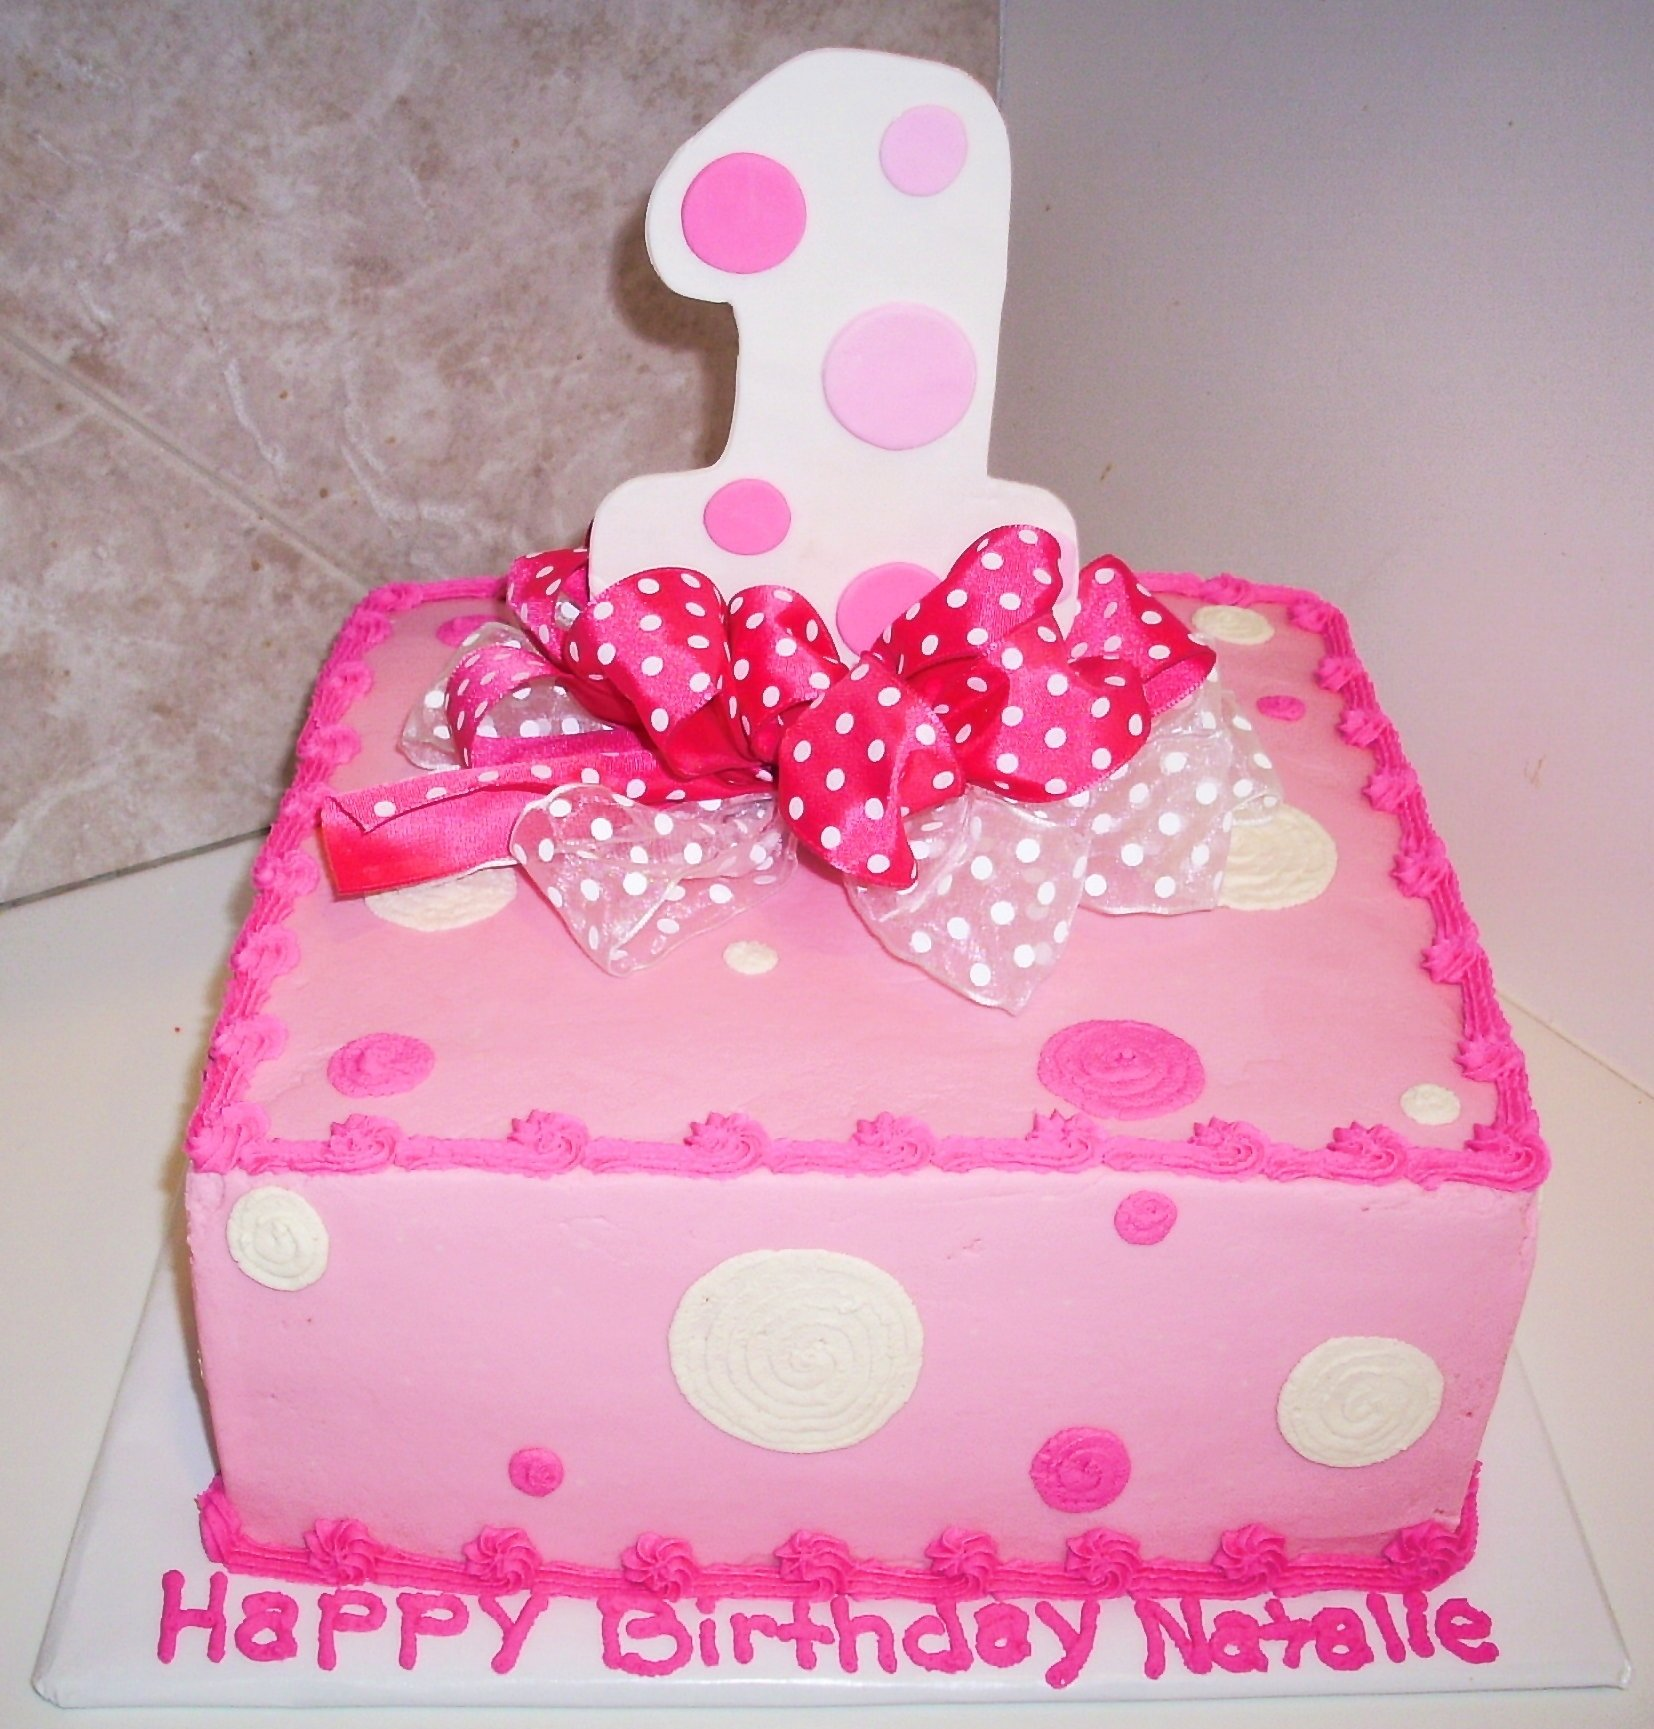 10 Most Popular First Birthday Cake Ideas For Girls 1st birthday cakes for girls pink bow cake pictures tips and 1 2020